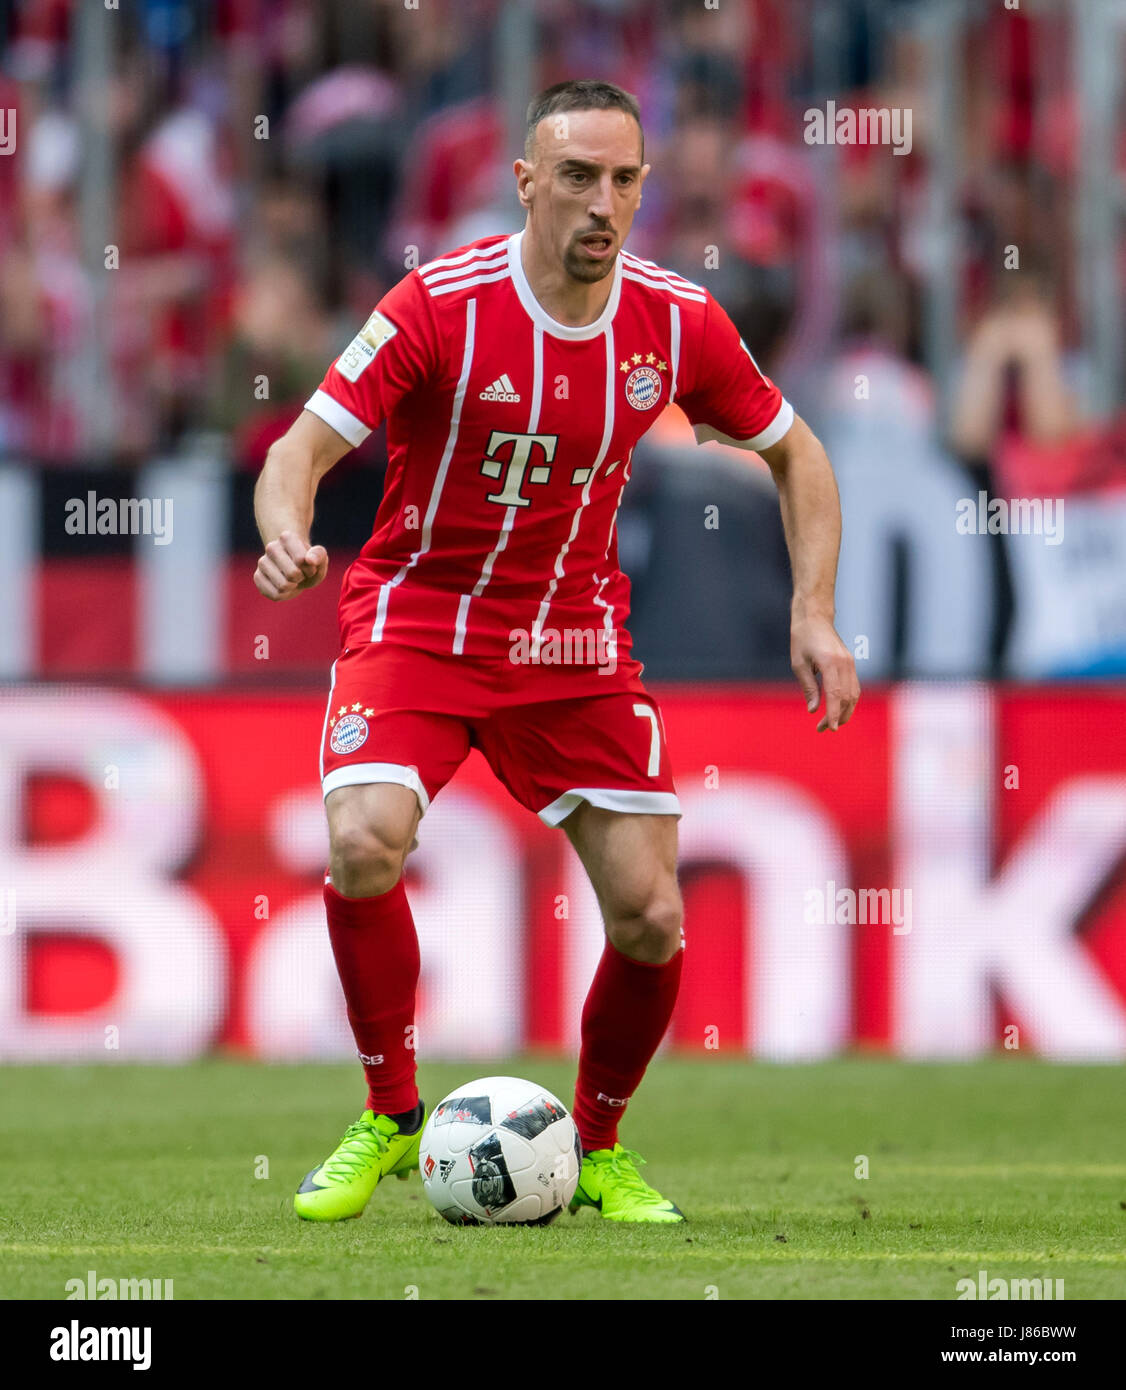 Munich s player Franck Ribery during the German Bundesliga soccer